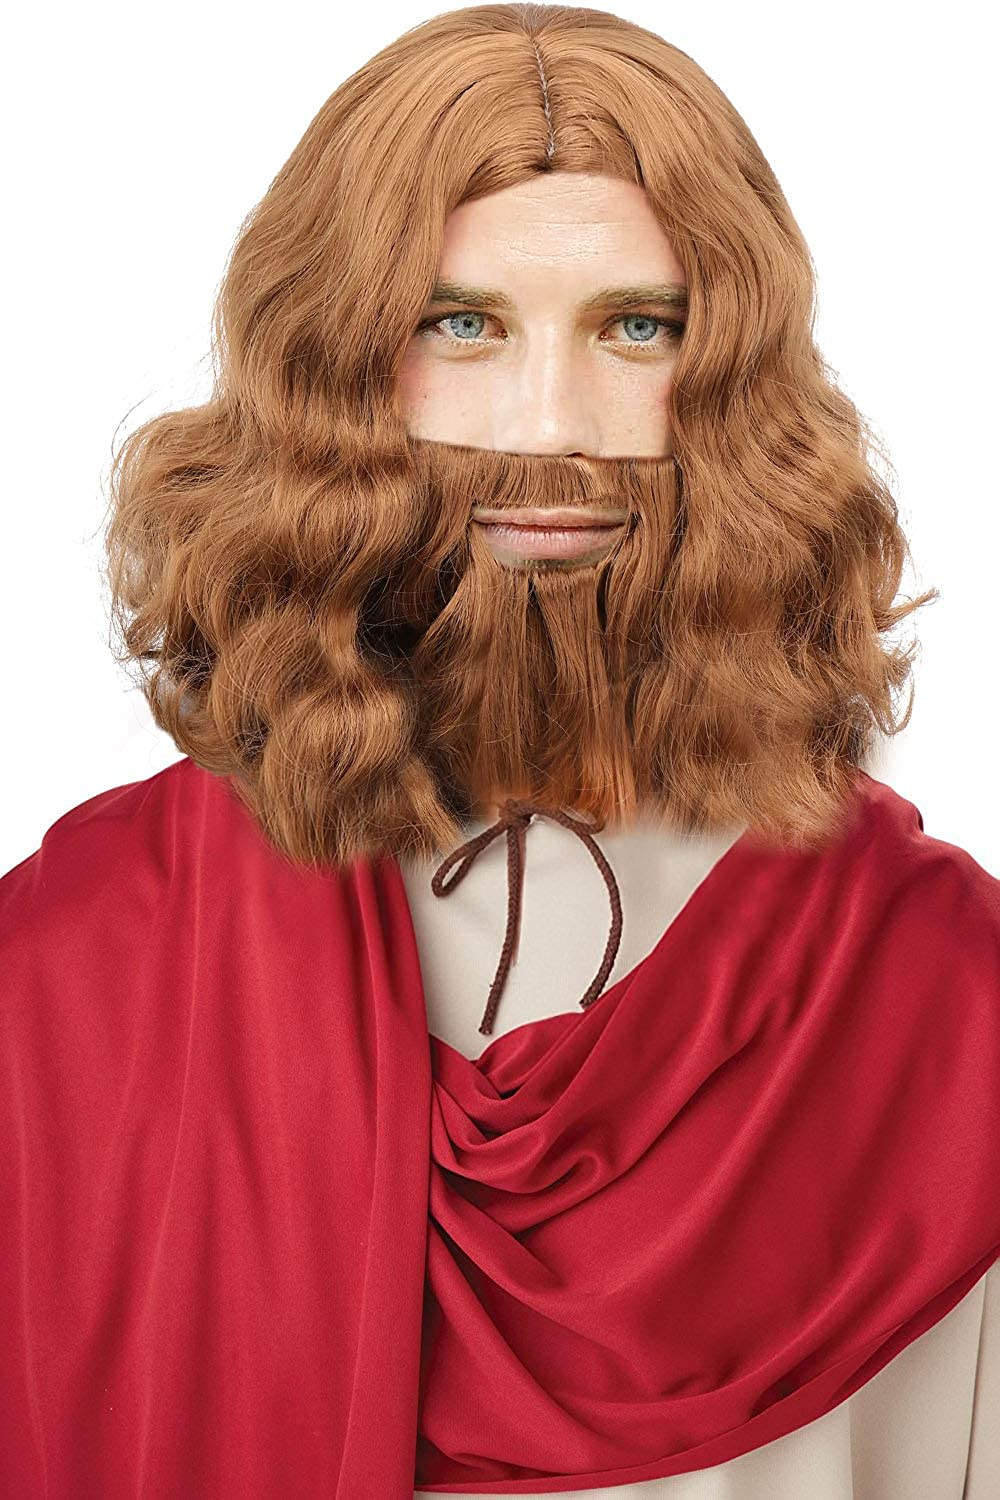 d224493ec2a Jesus wig and beard set for adult with free wig cap. Looks   feels like  real